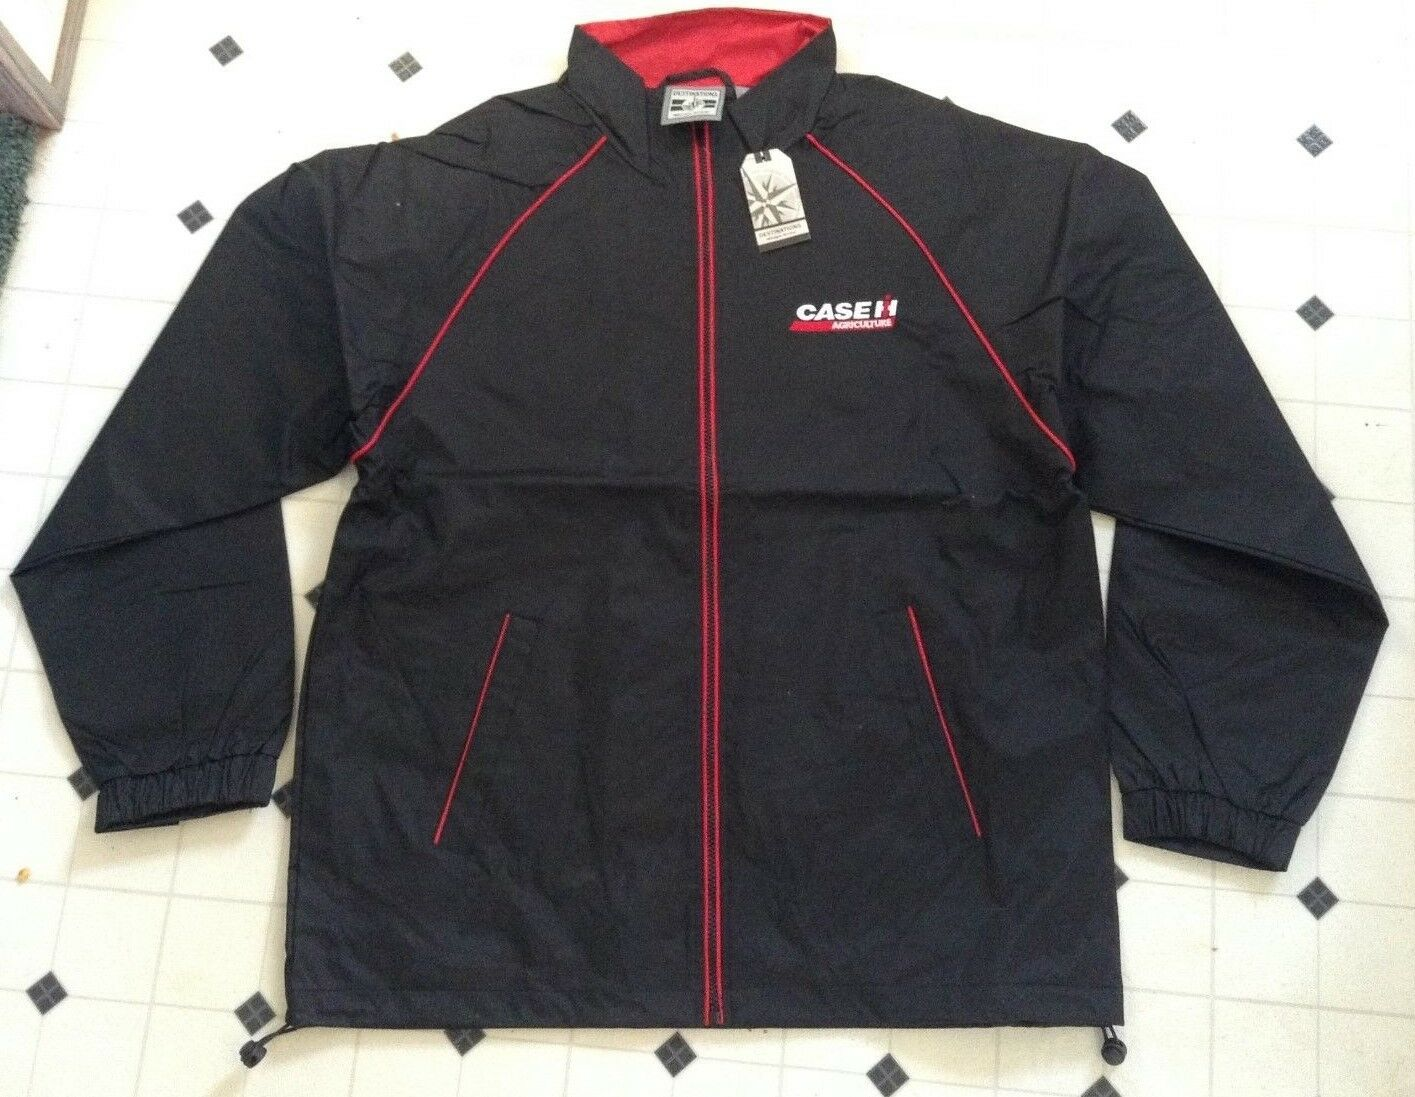 A New CaseIH Extra Large Zip Up Rain Jacket With No Hood